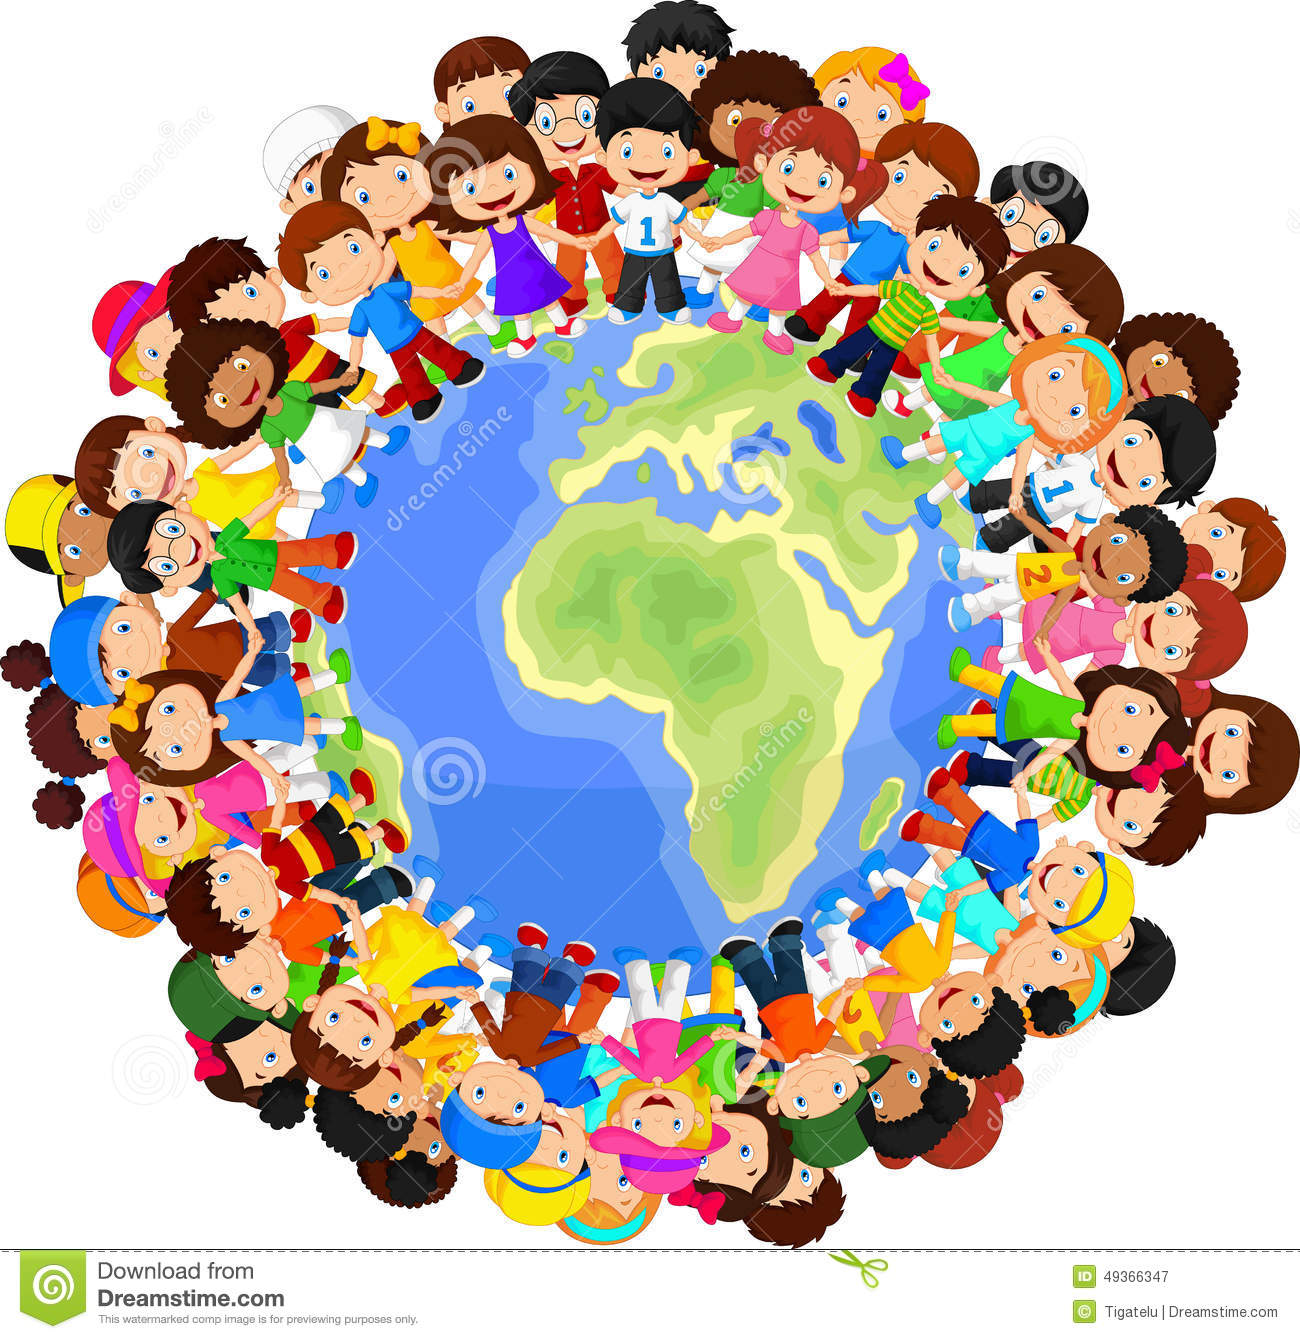 Stock Illustration Multicultural Children Cartoon Pla  Earth Illustration Image49366347 also Aussie World moreover 360Degree VirtualTour likewise The Impact Of Recycling And How You Can Make A Difference moreover Watch. on activities for world book day